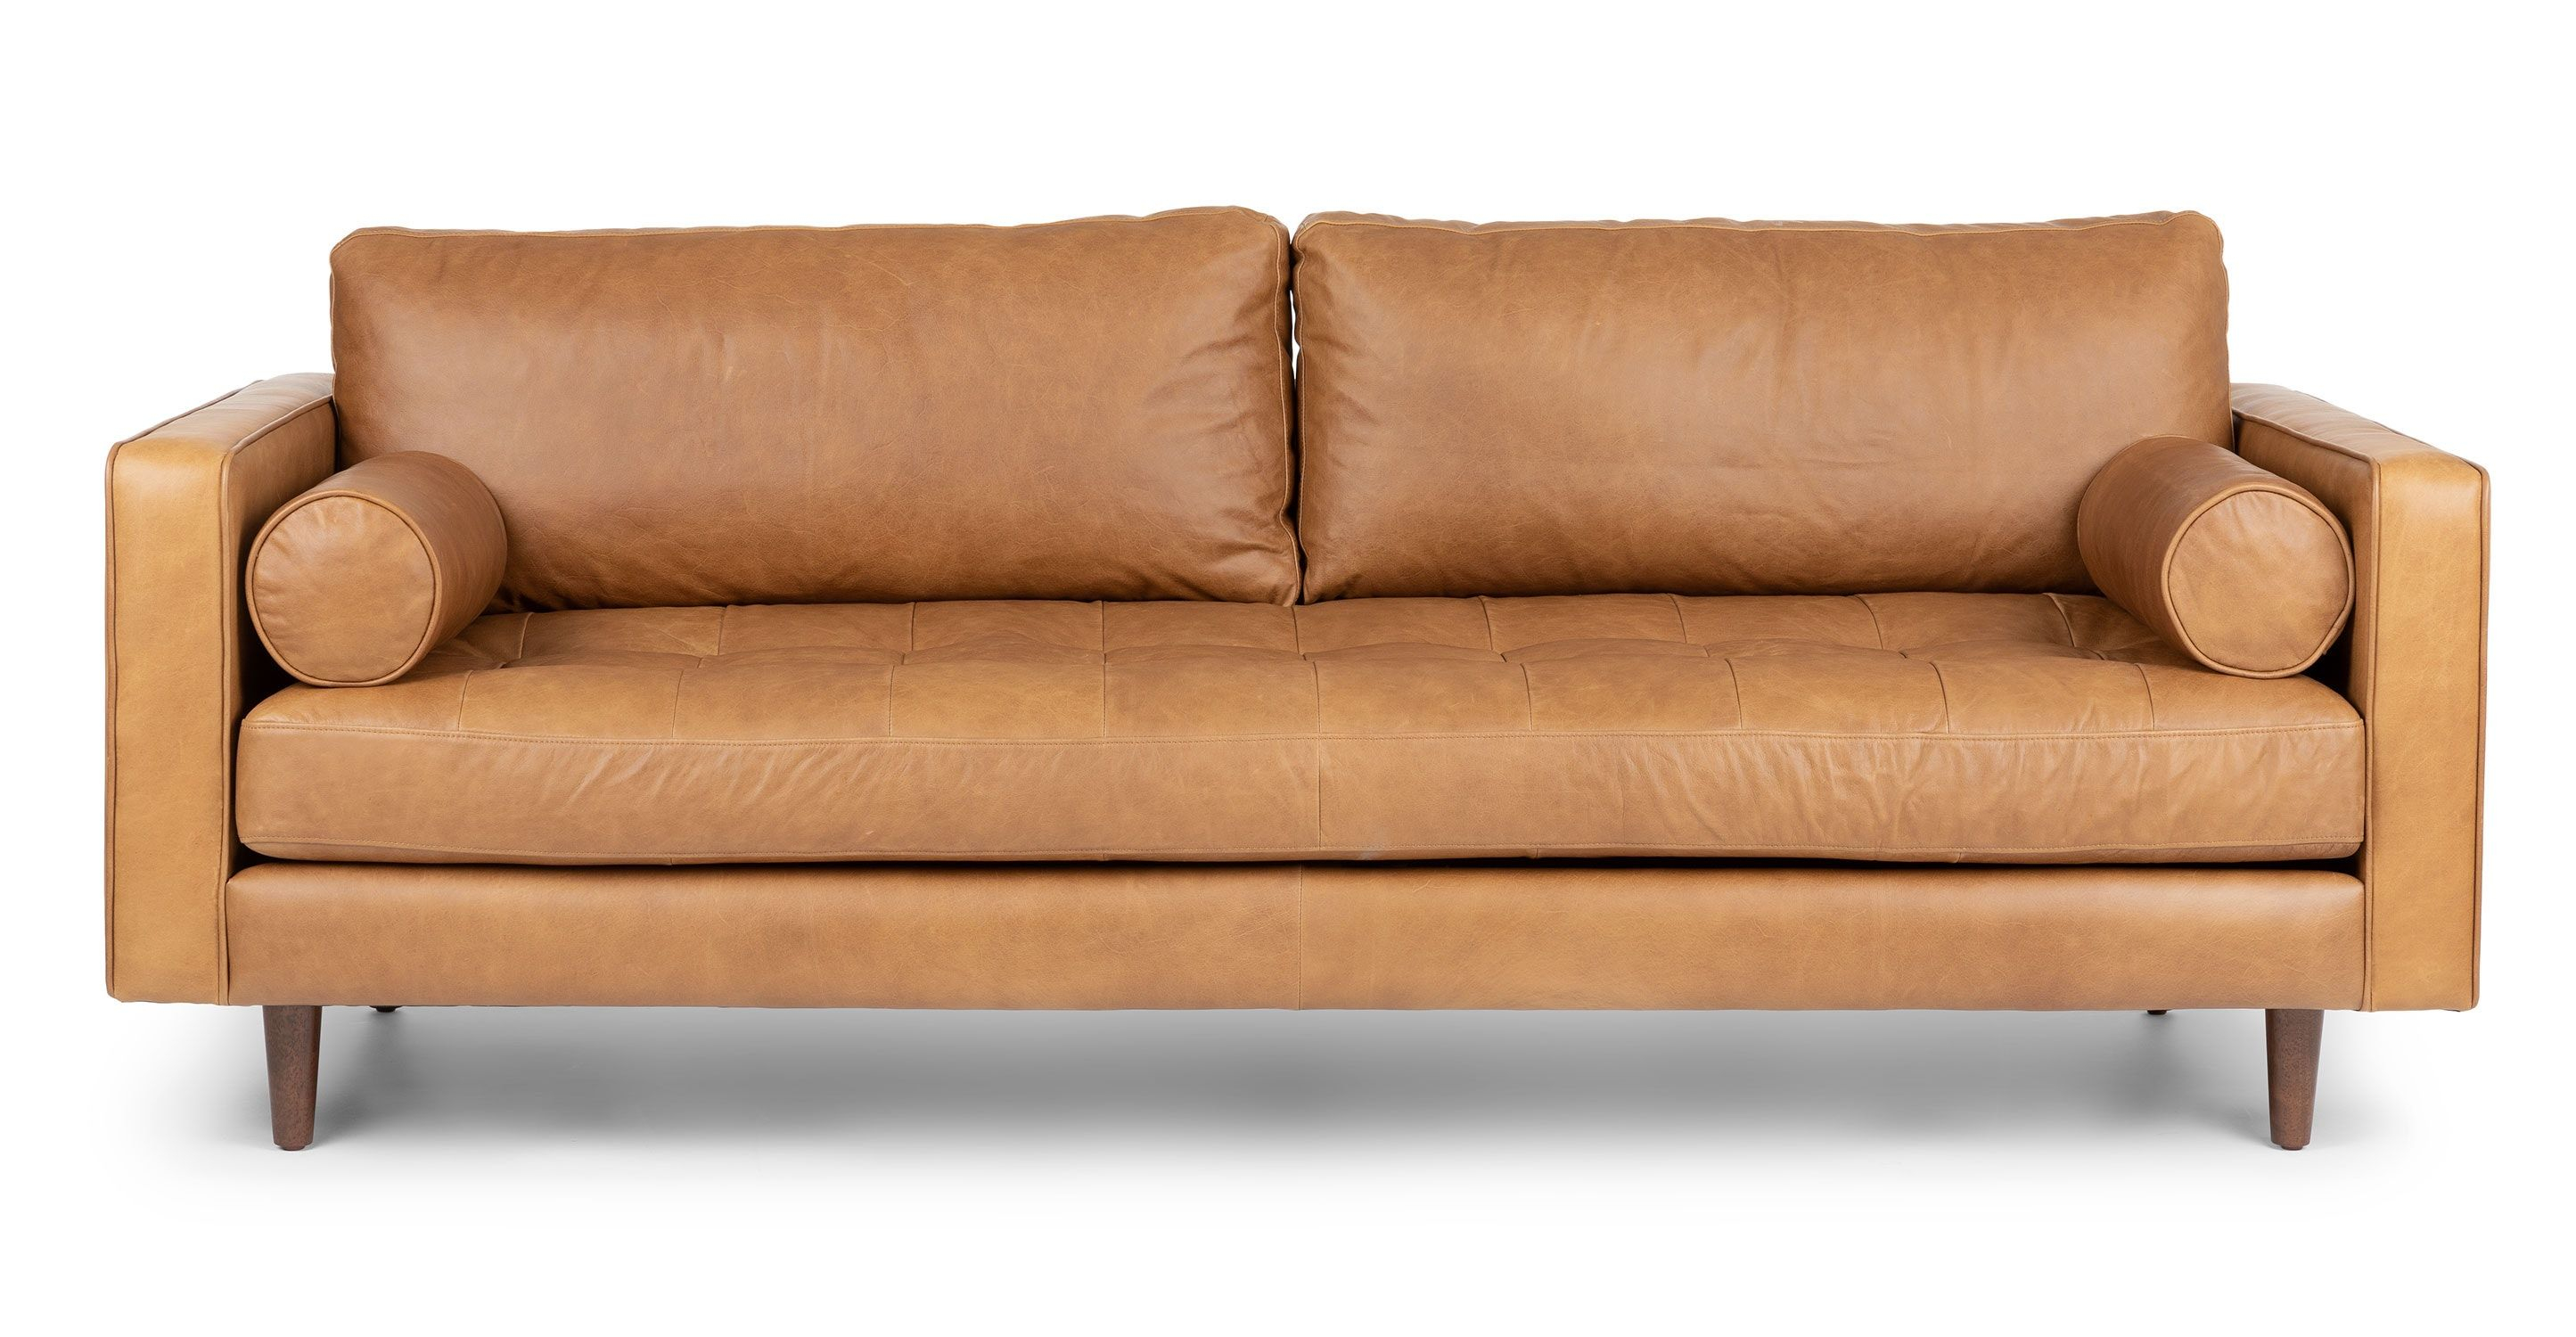 Tan Brown Leather Sofa Italian Leather Article Sven within dimensions 2890 X 1500